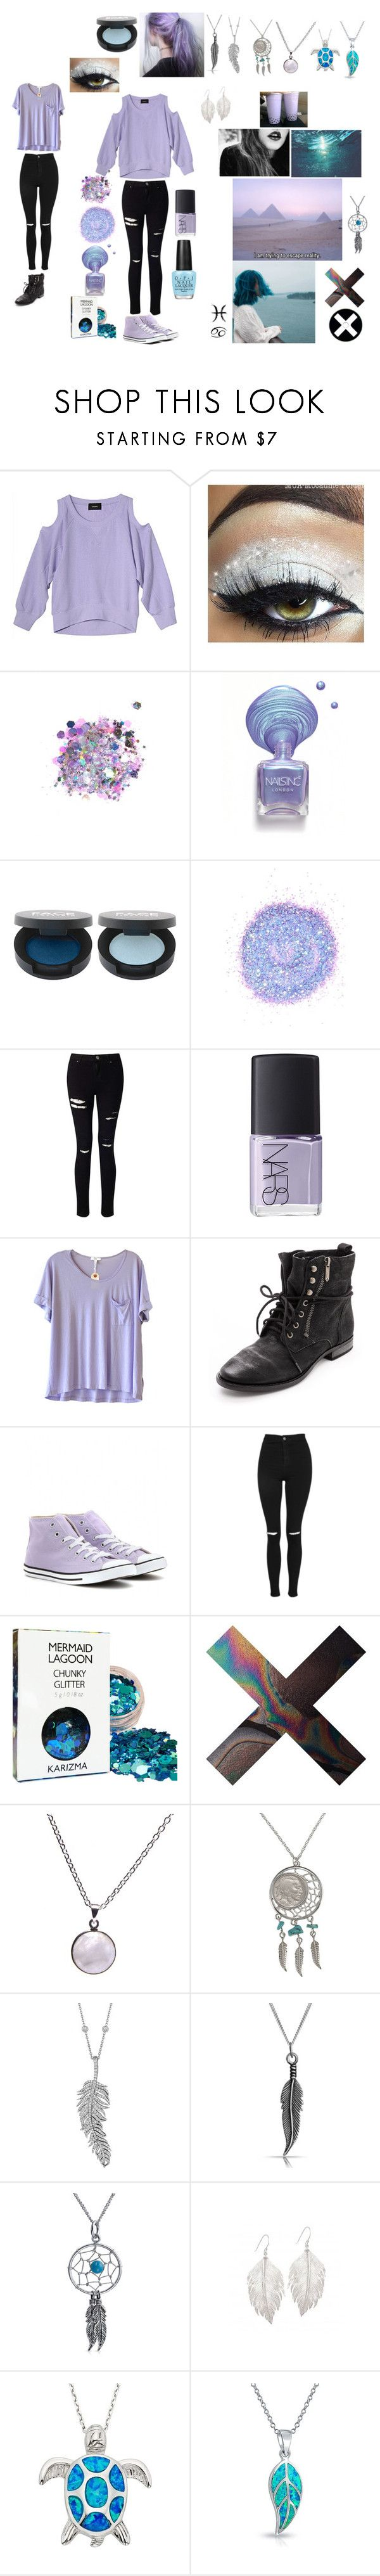 """""""pastel glitter angel"""" by billie-del-rey ❤ liked on Polyvore featuring The Gypsy Shrine, Miss Selfridge, NARS Cosmetics, Clu, Sam Edelman, Converse, Topshop, Puck Wanderlust, American Coin Treasures and Penny Preville"""